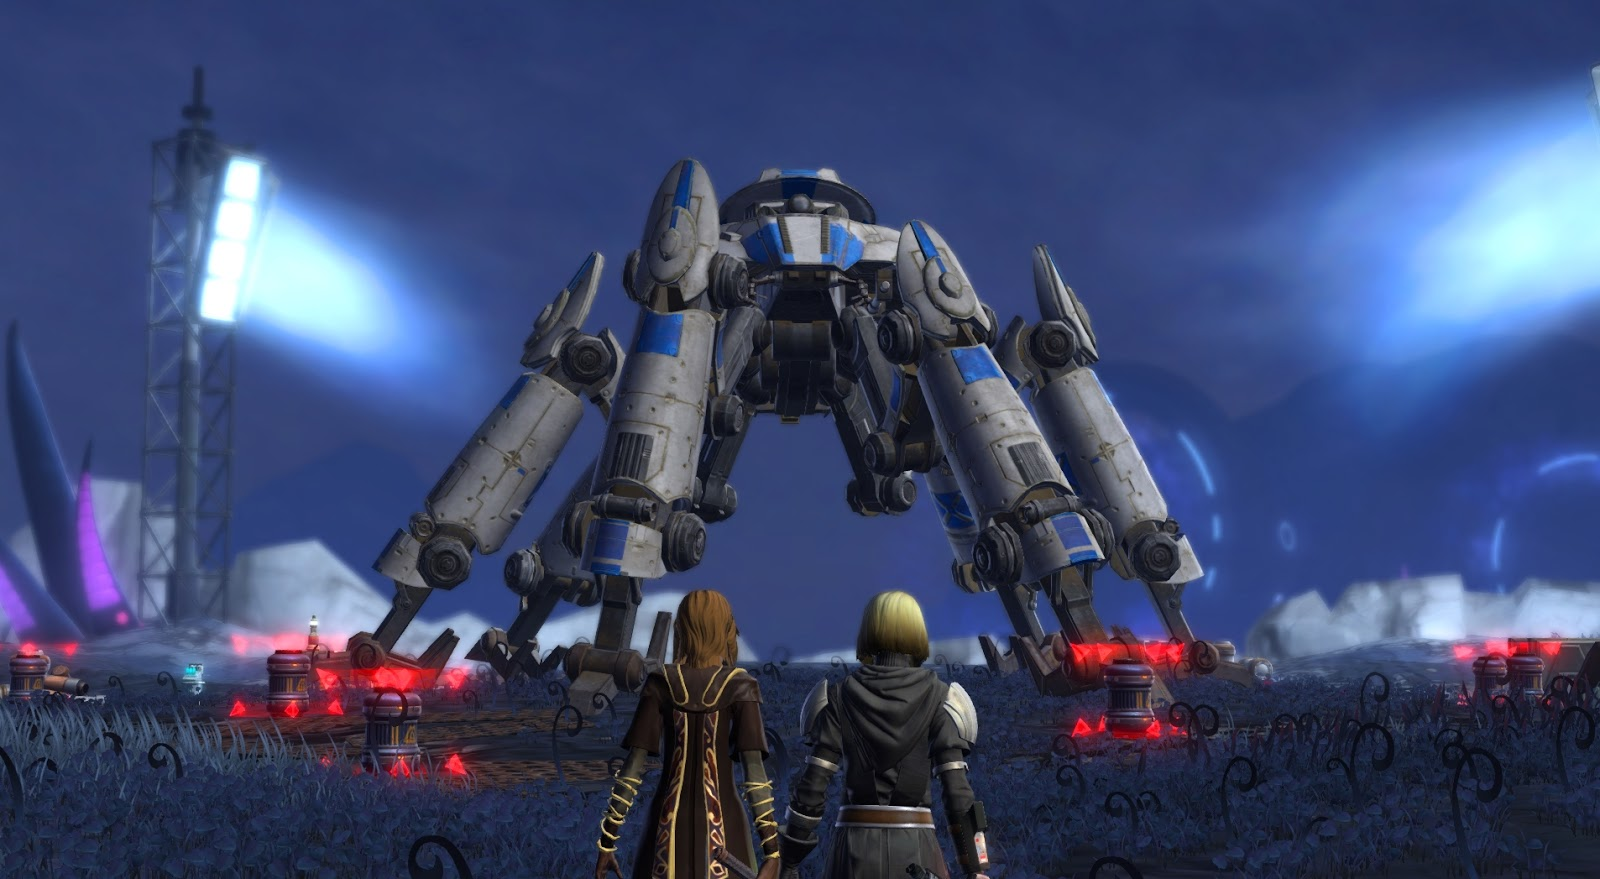 Swtor Bought New Race Not Shoeing Up